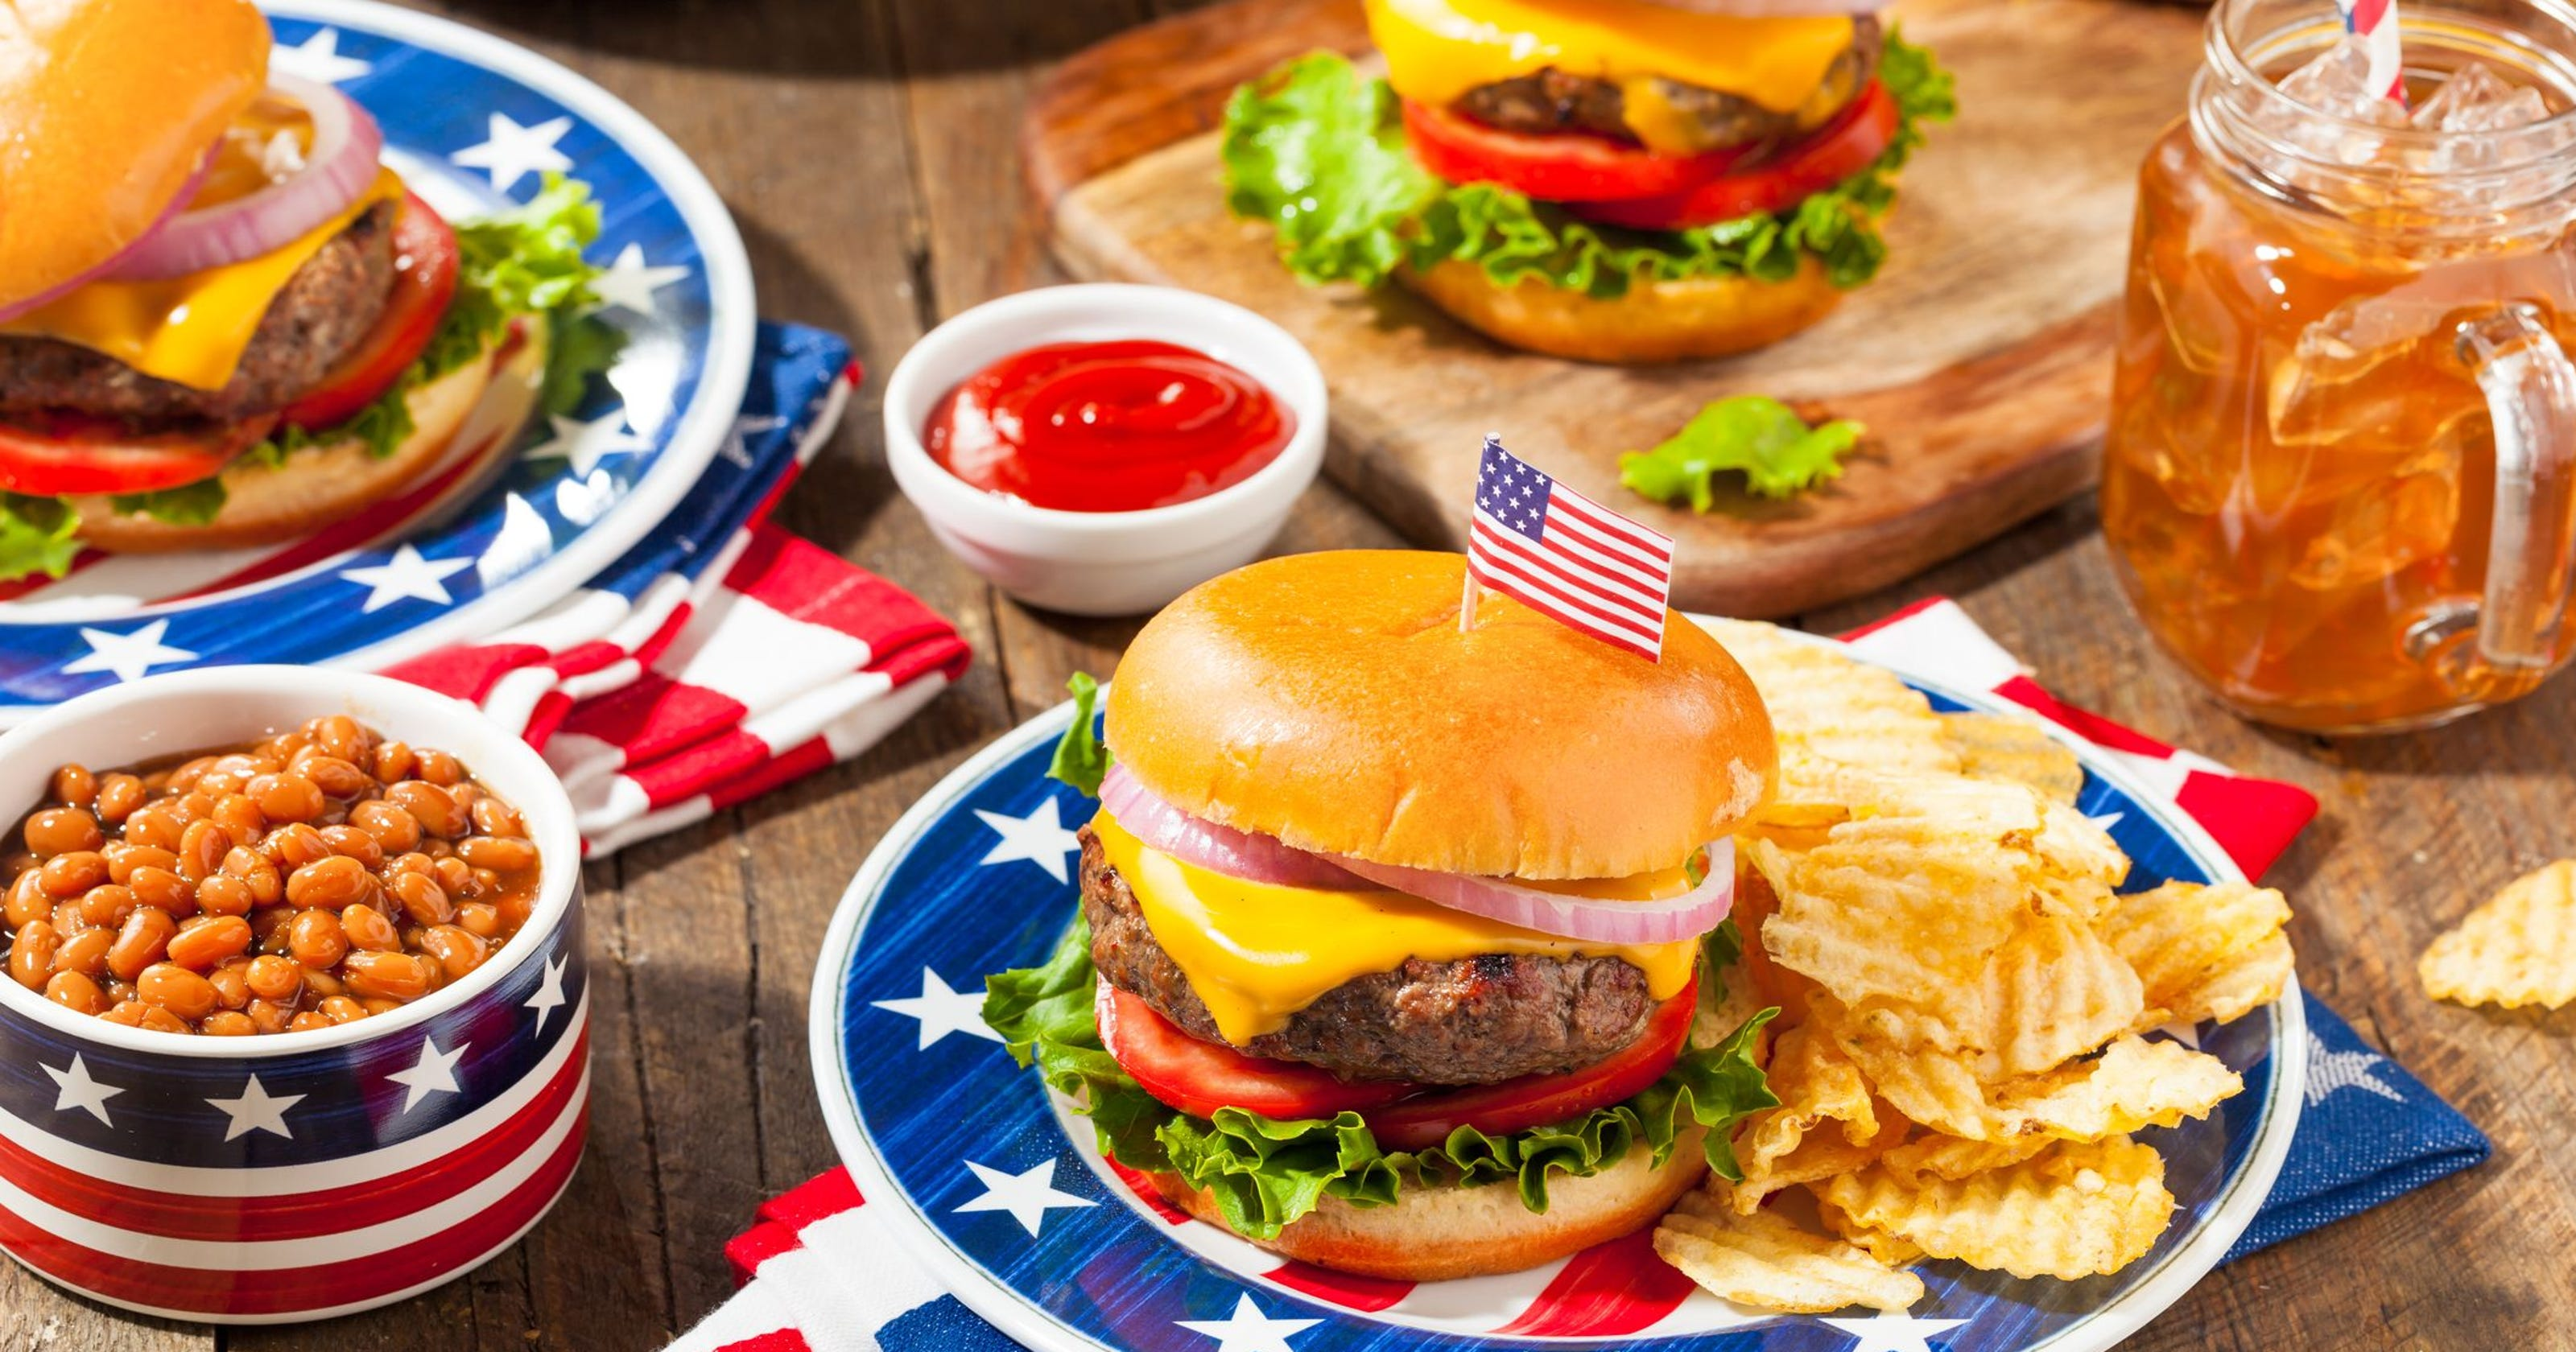 How to throw a killer Fourth of July cookout on a budget